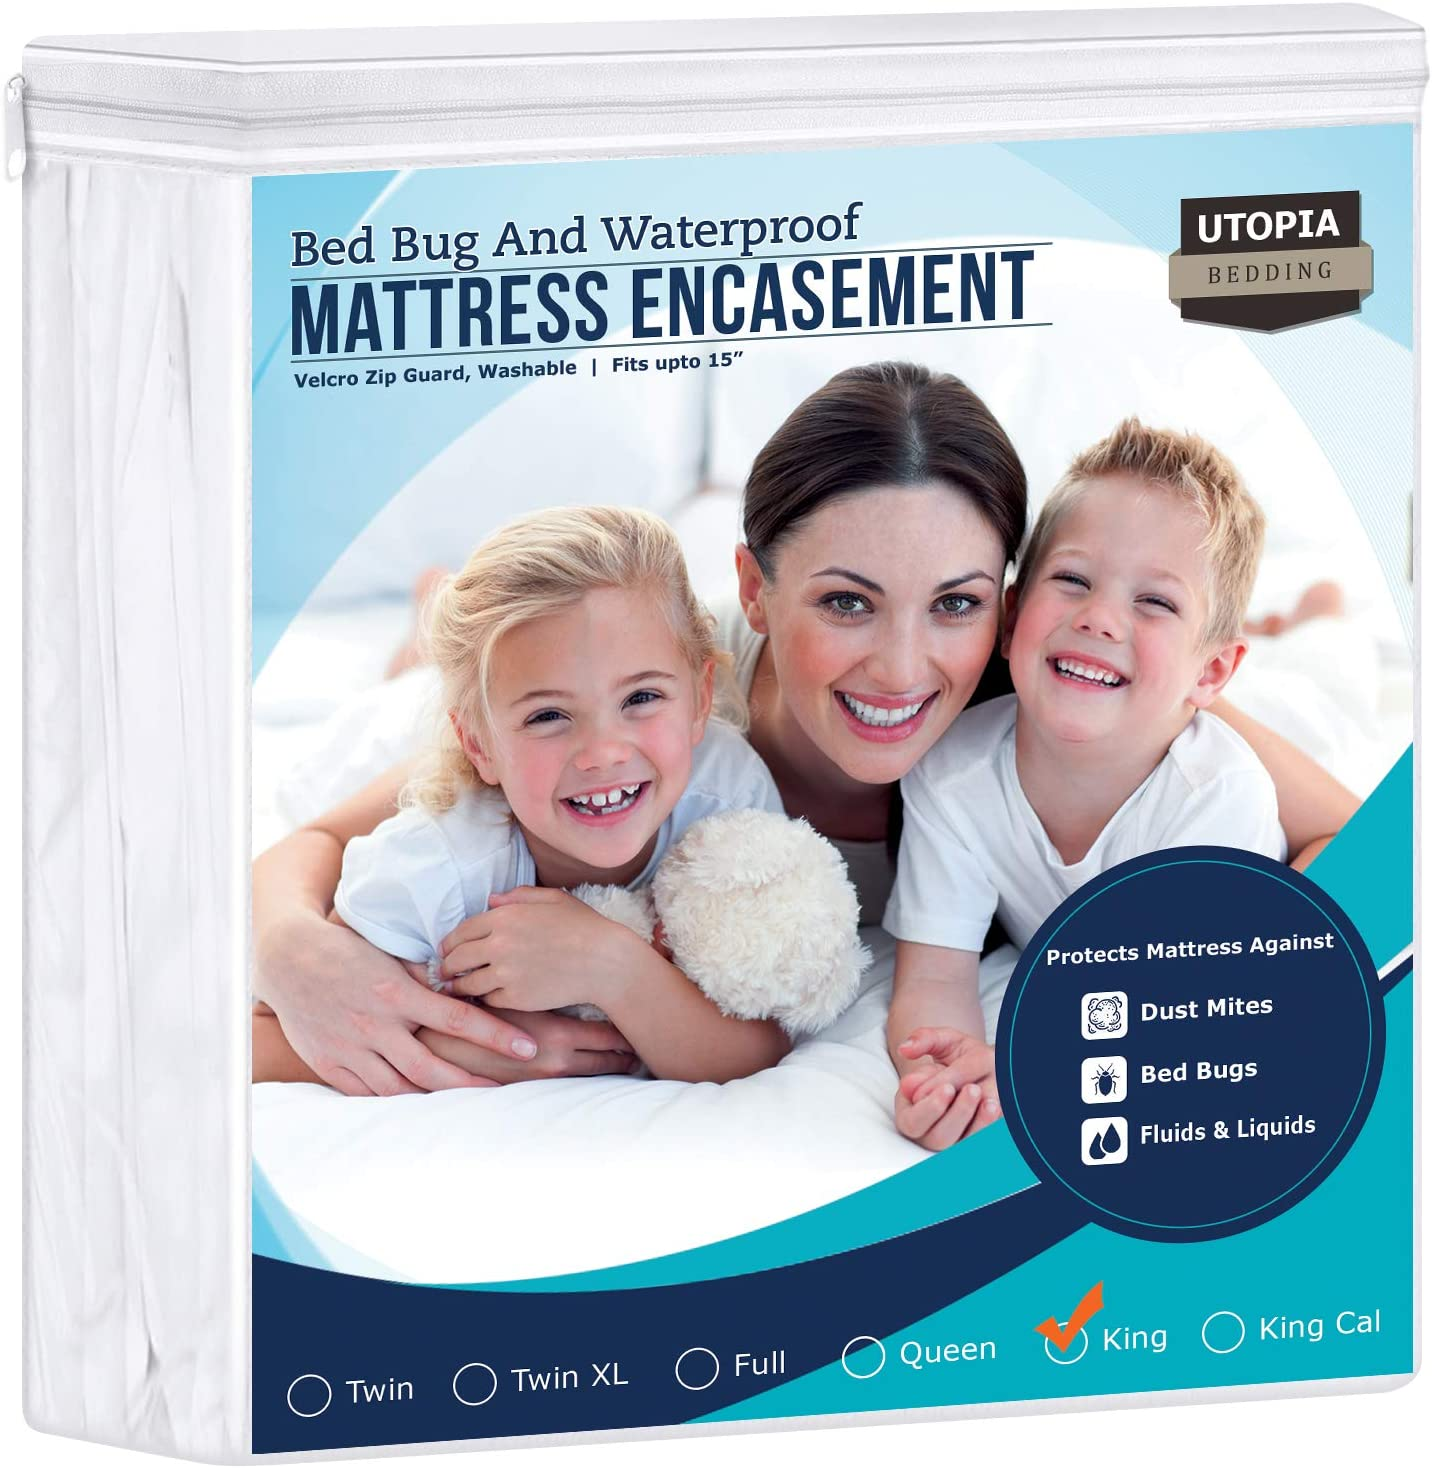 How to pick a bedbug mattress cover